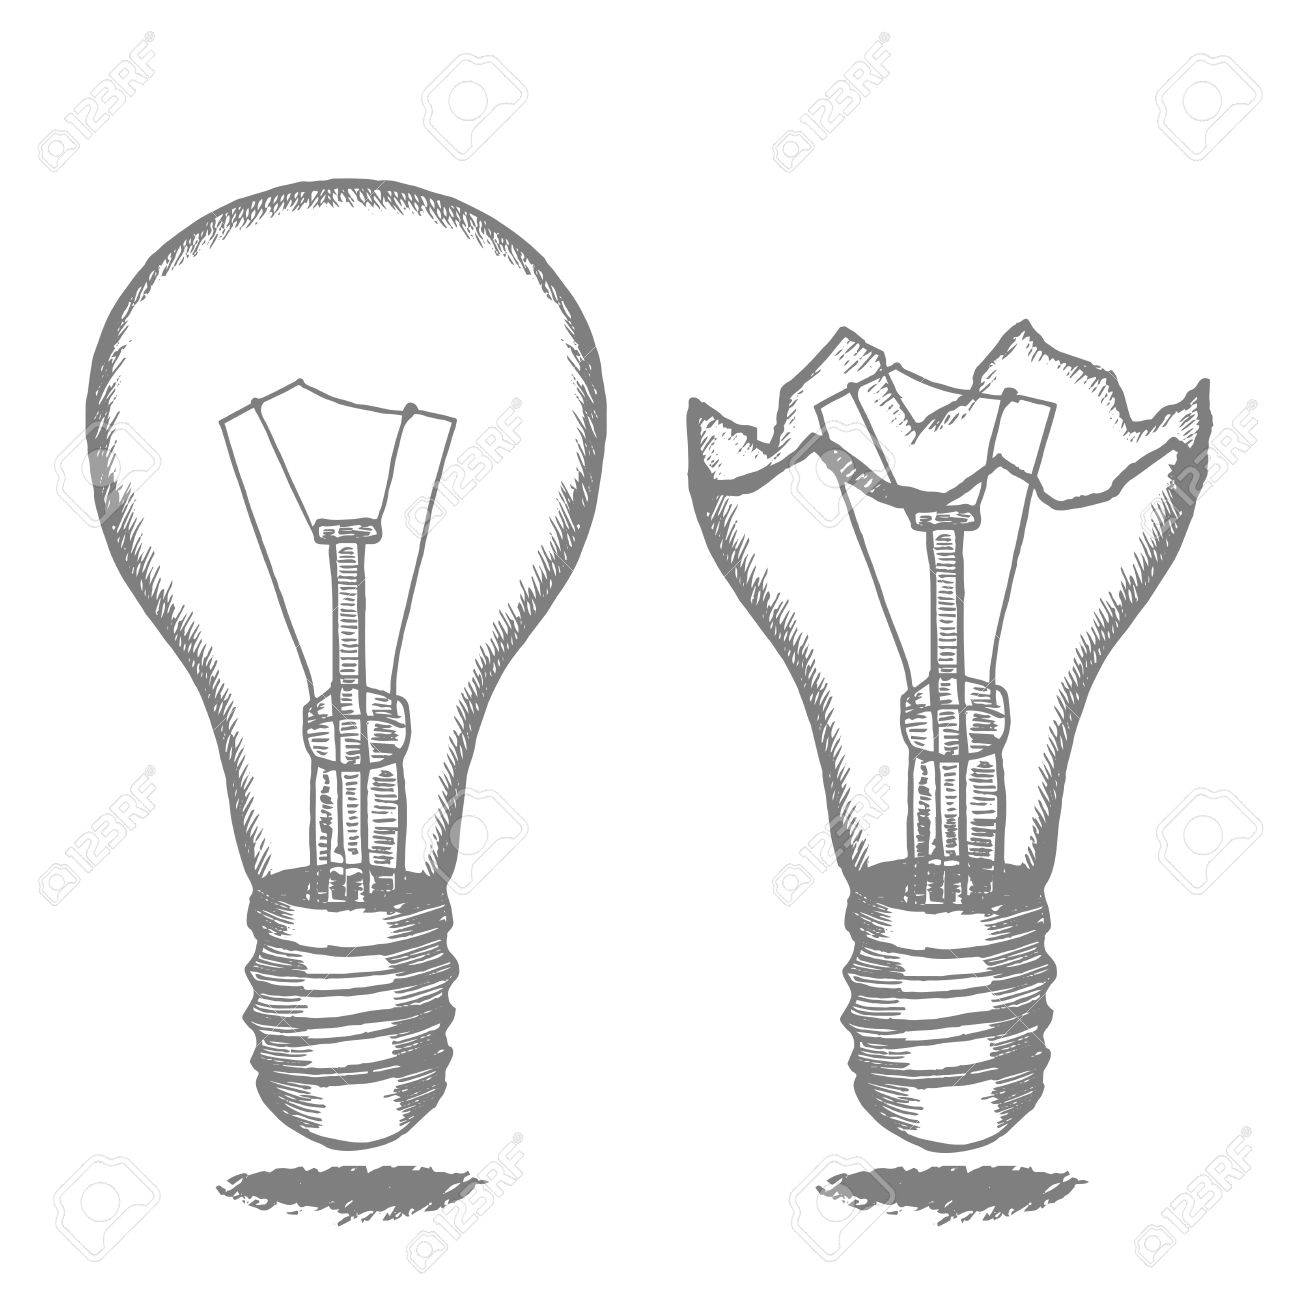 1299x1300 Lamp Bulb Hand Draw Sketch. Vector Royalty Free Cliparts, Vectors